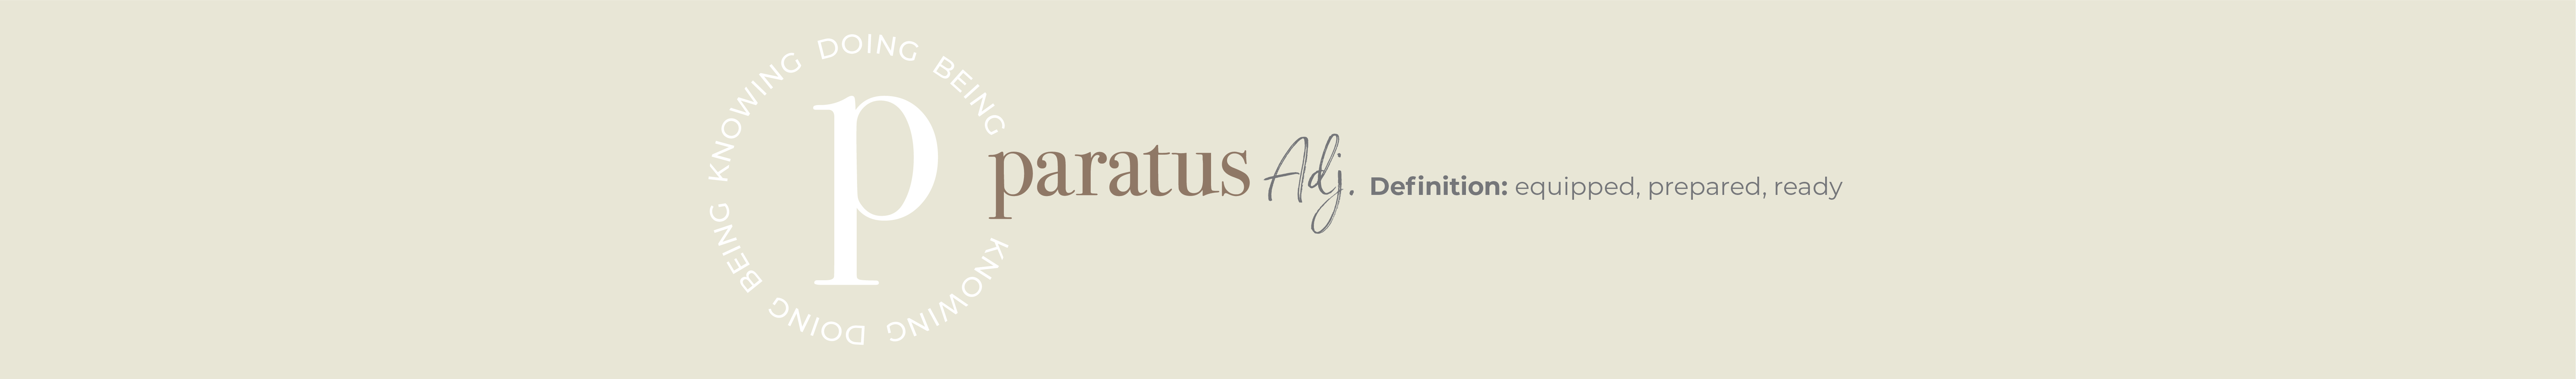 Paratus logo and definition.